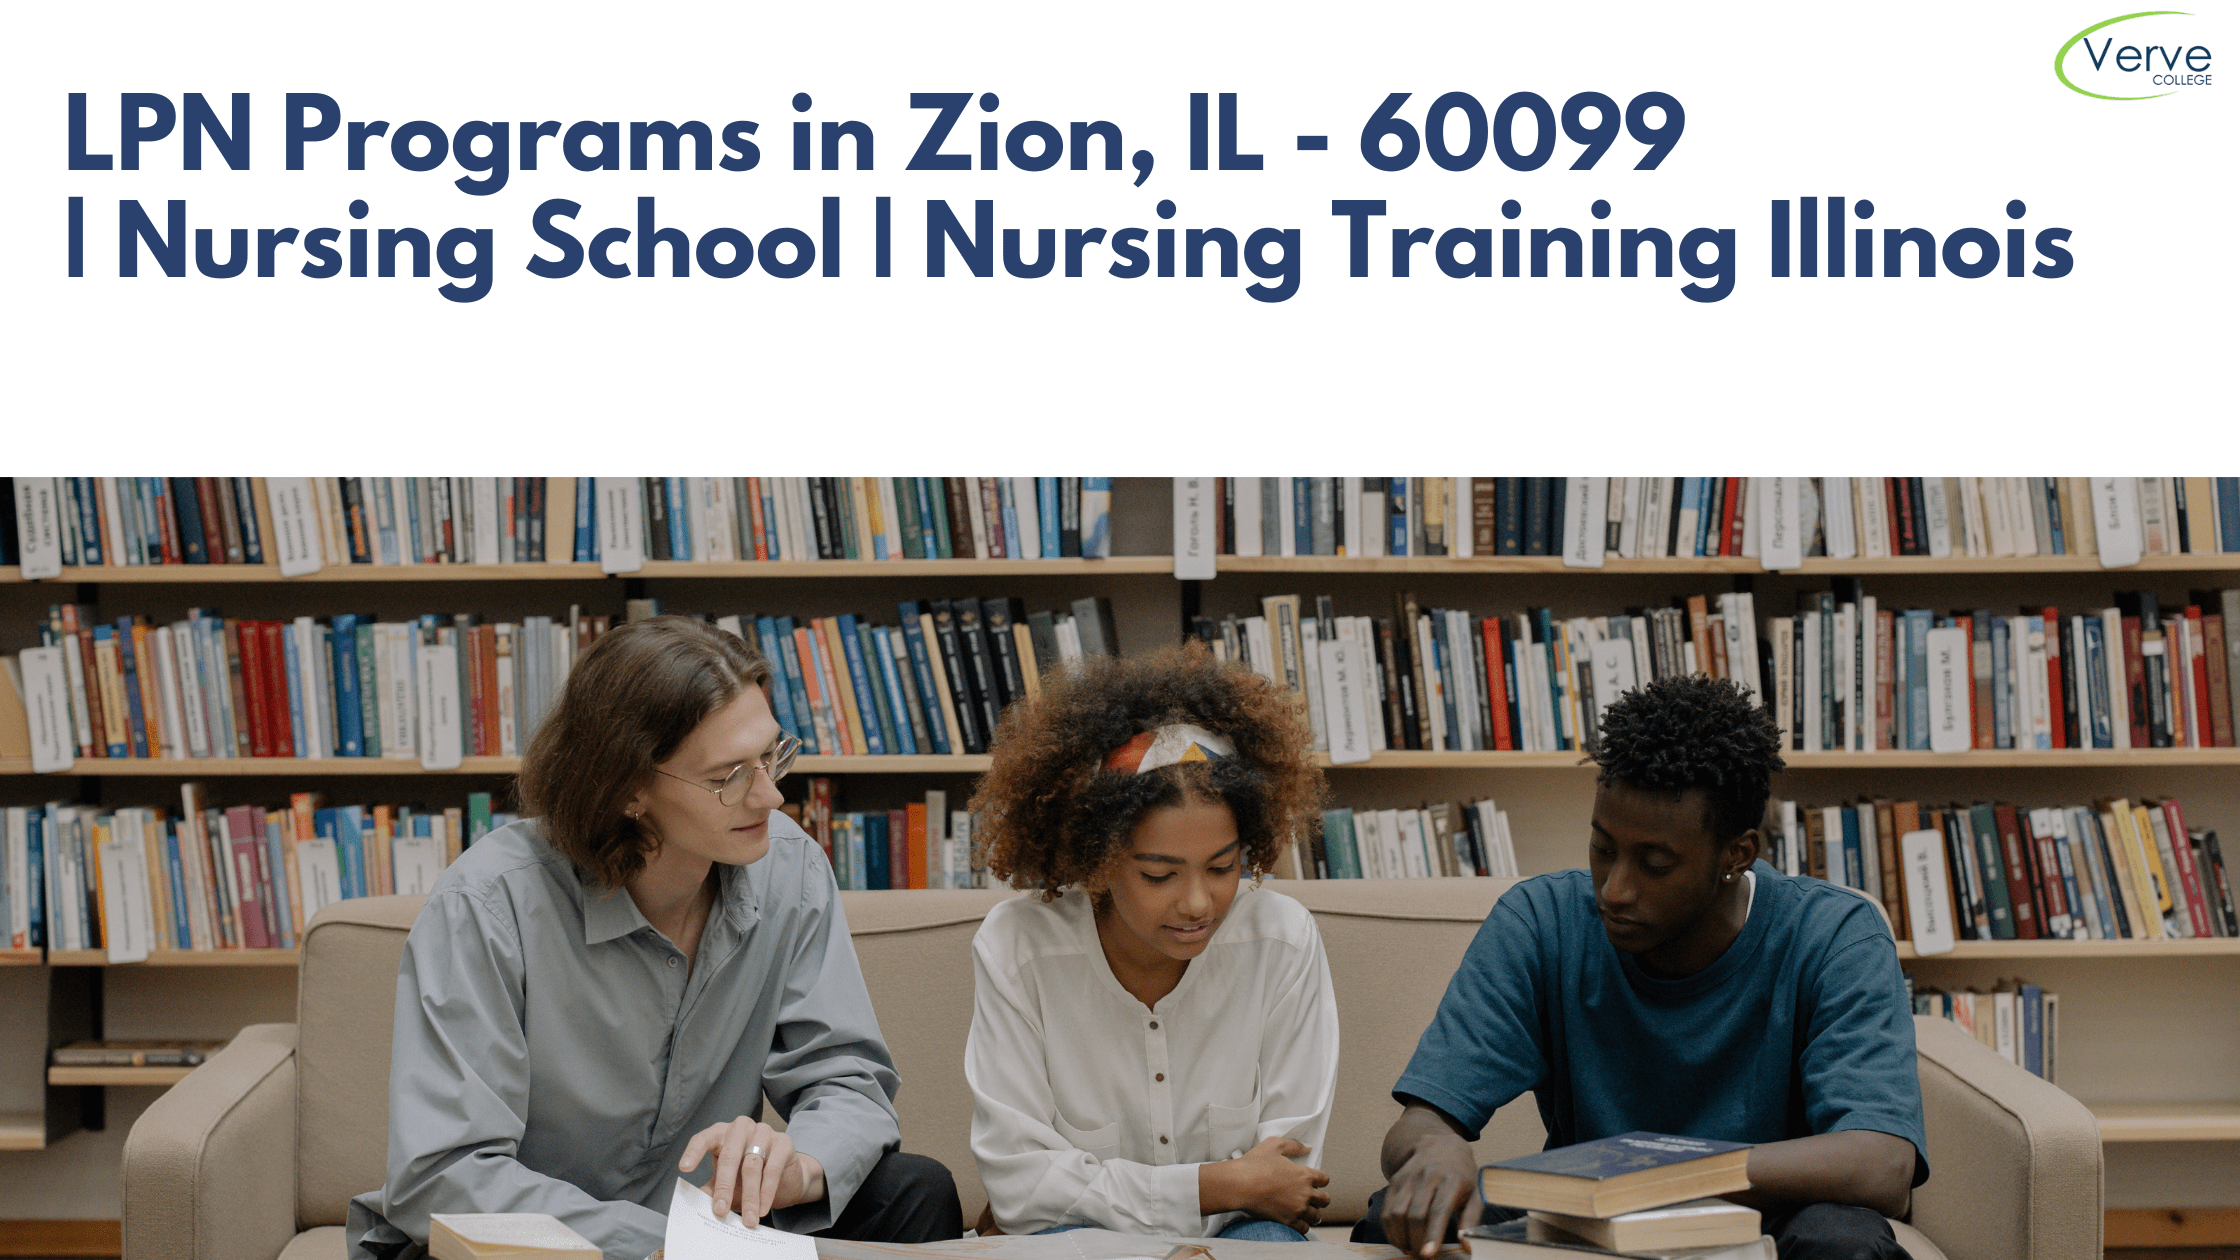 LPN Programs in Zion, IL – 60099 | Nursing School | Nursing Training Illinois